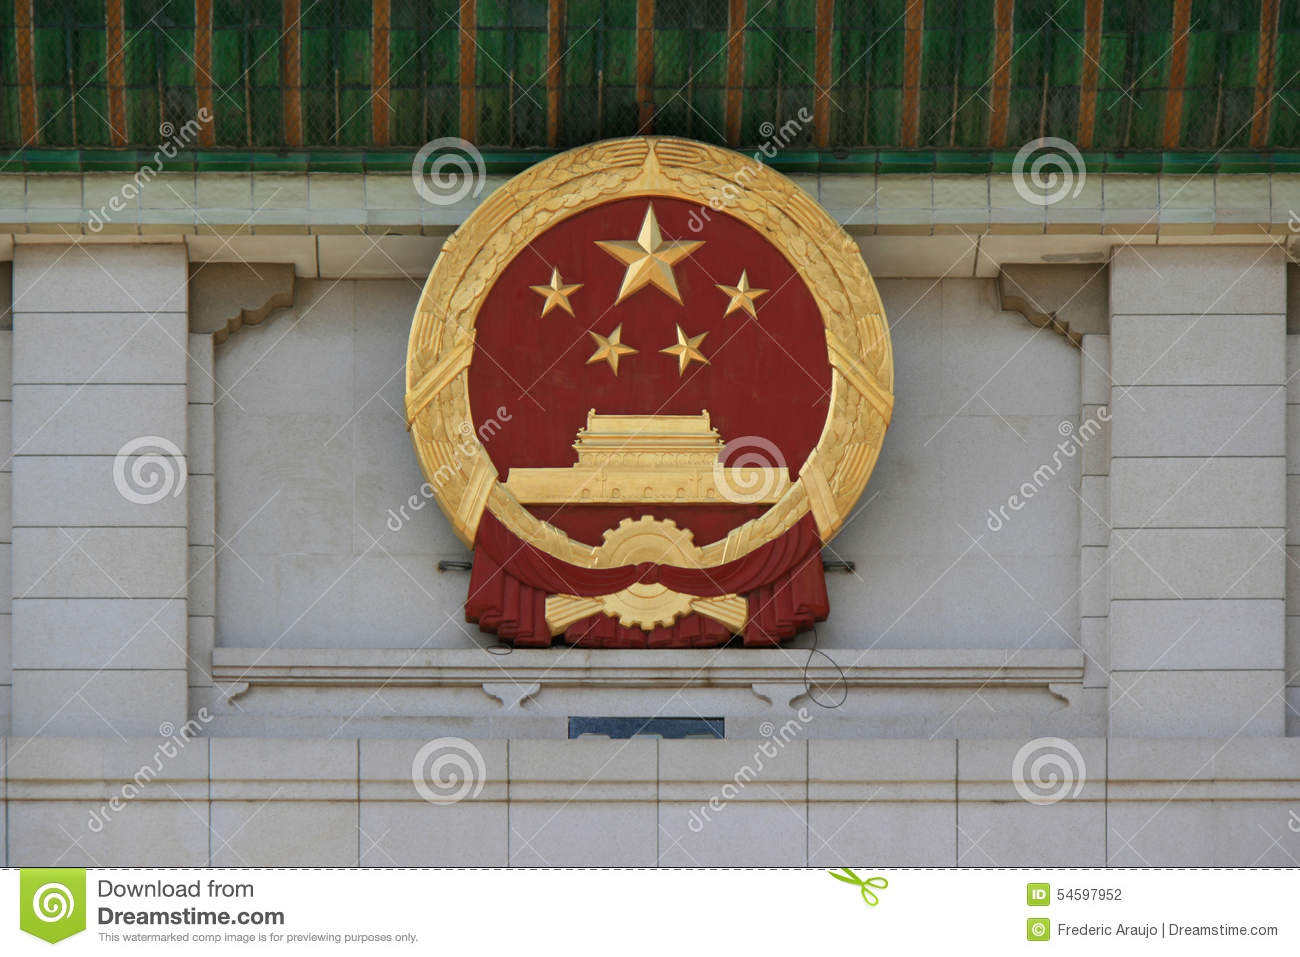 Il Great Hall of the People - Pechino - Cina (3)